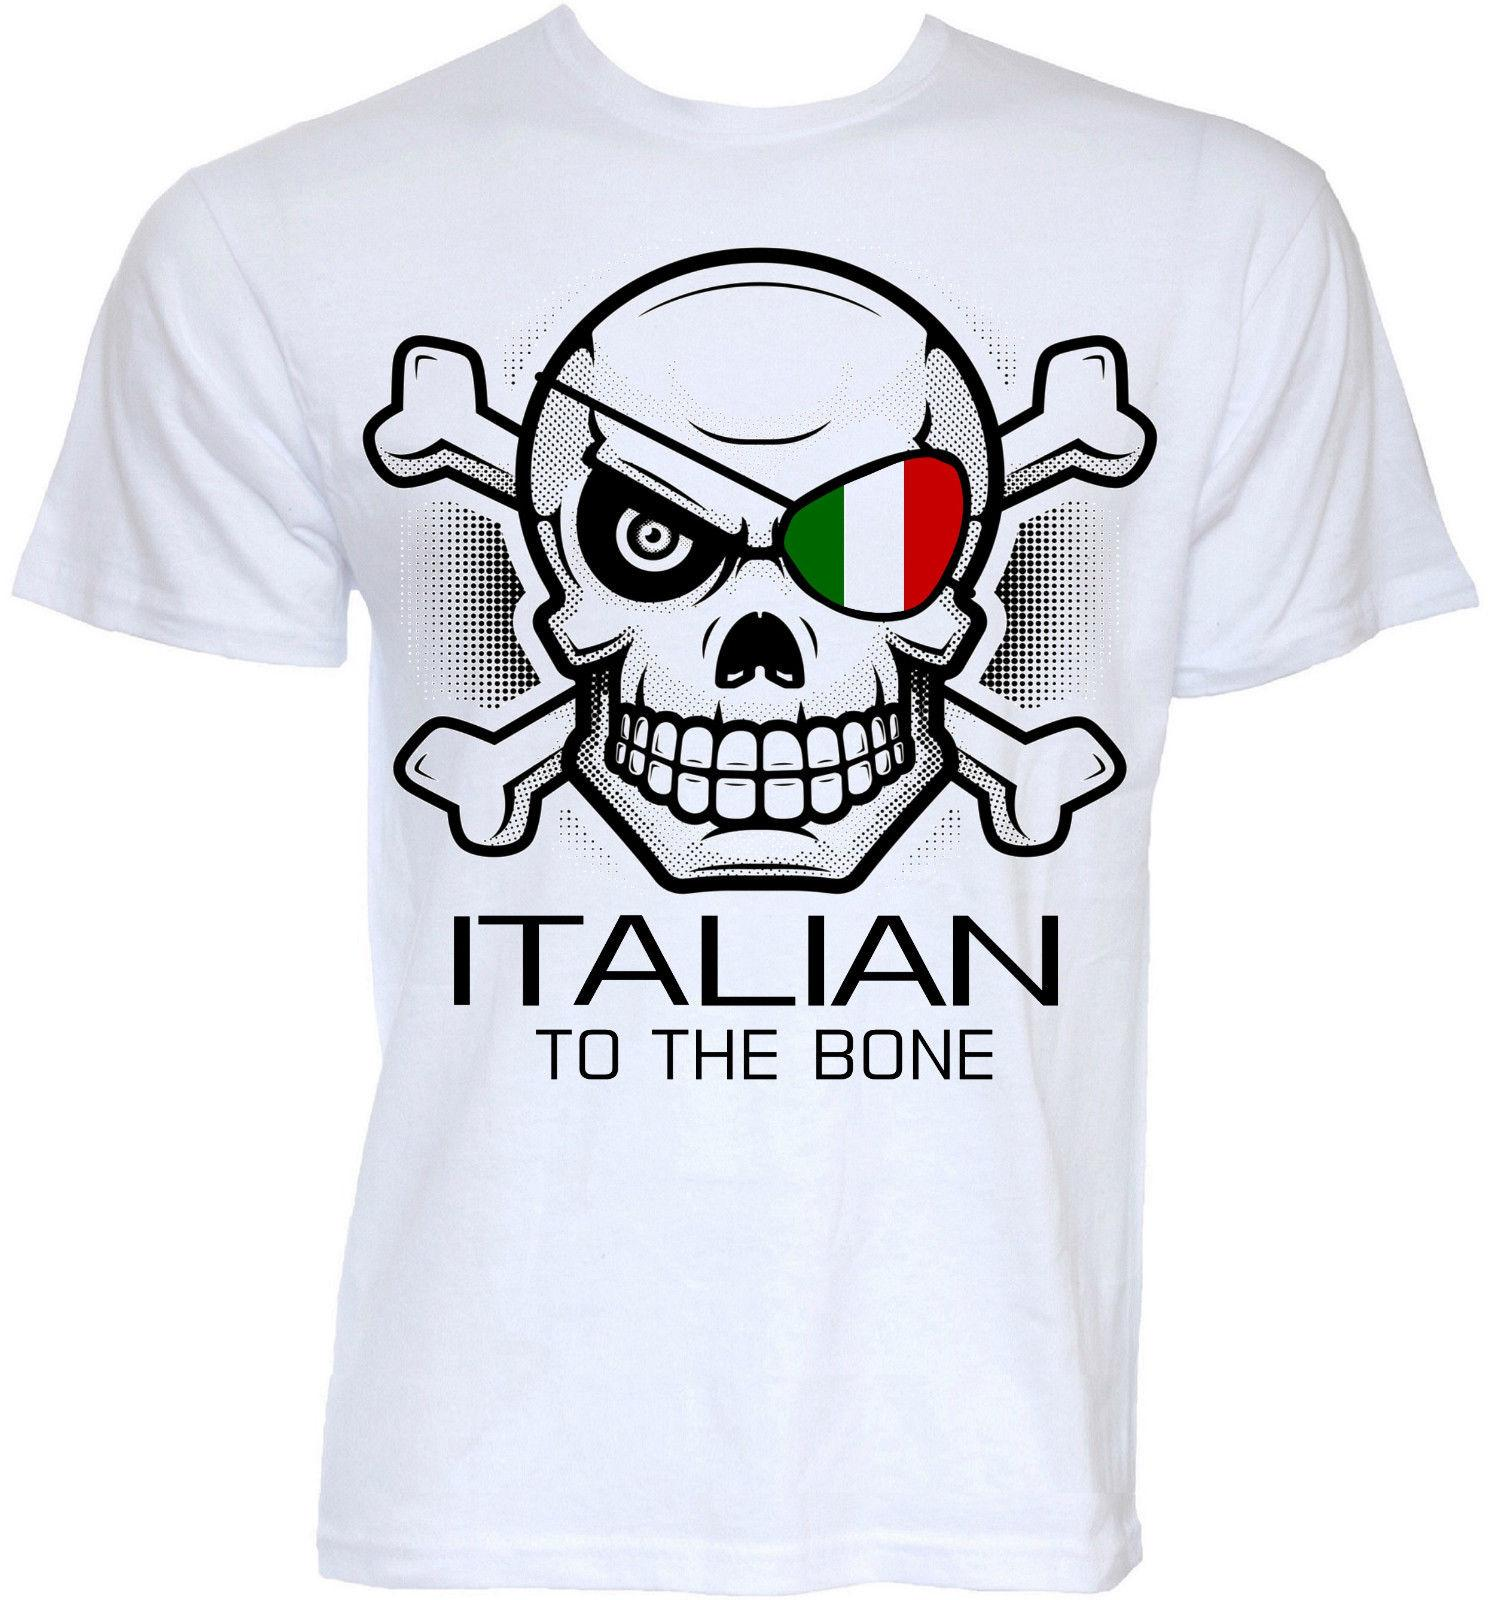 e2740c09 Italy T Shirts Mens Funny Novelty Italian Flag Slogan Joke Rude Gifts T  Shirt Ot Shirts Best Designer T Shirts From Langtonstore, $24.2| DHgate.Com